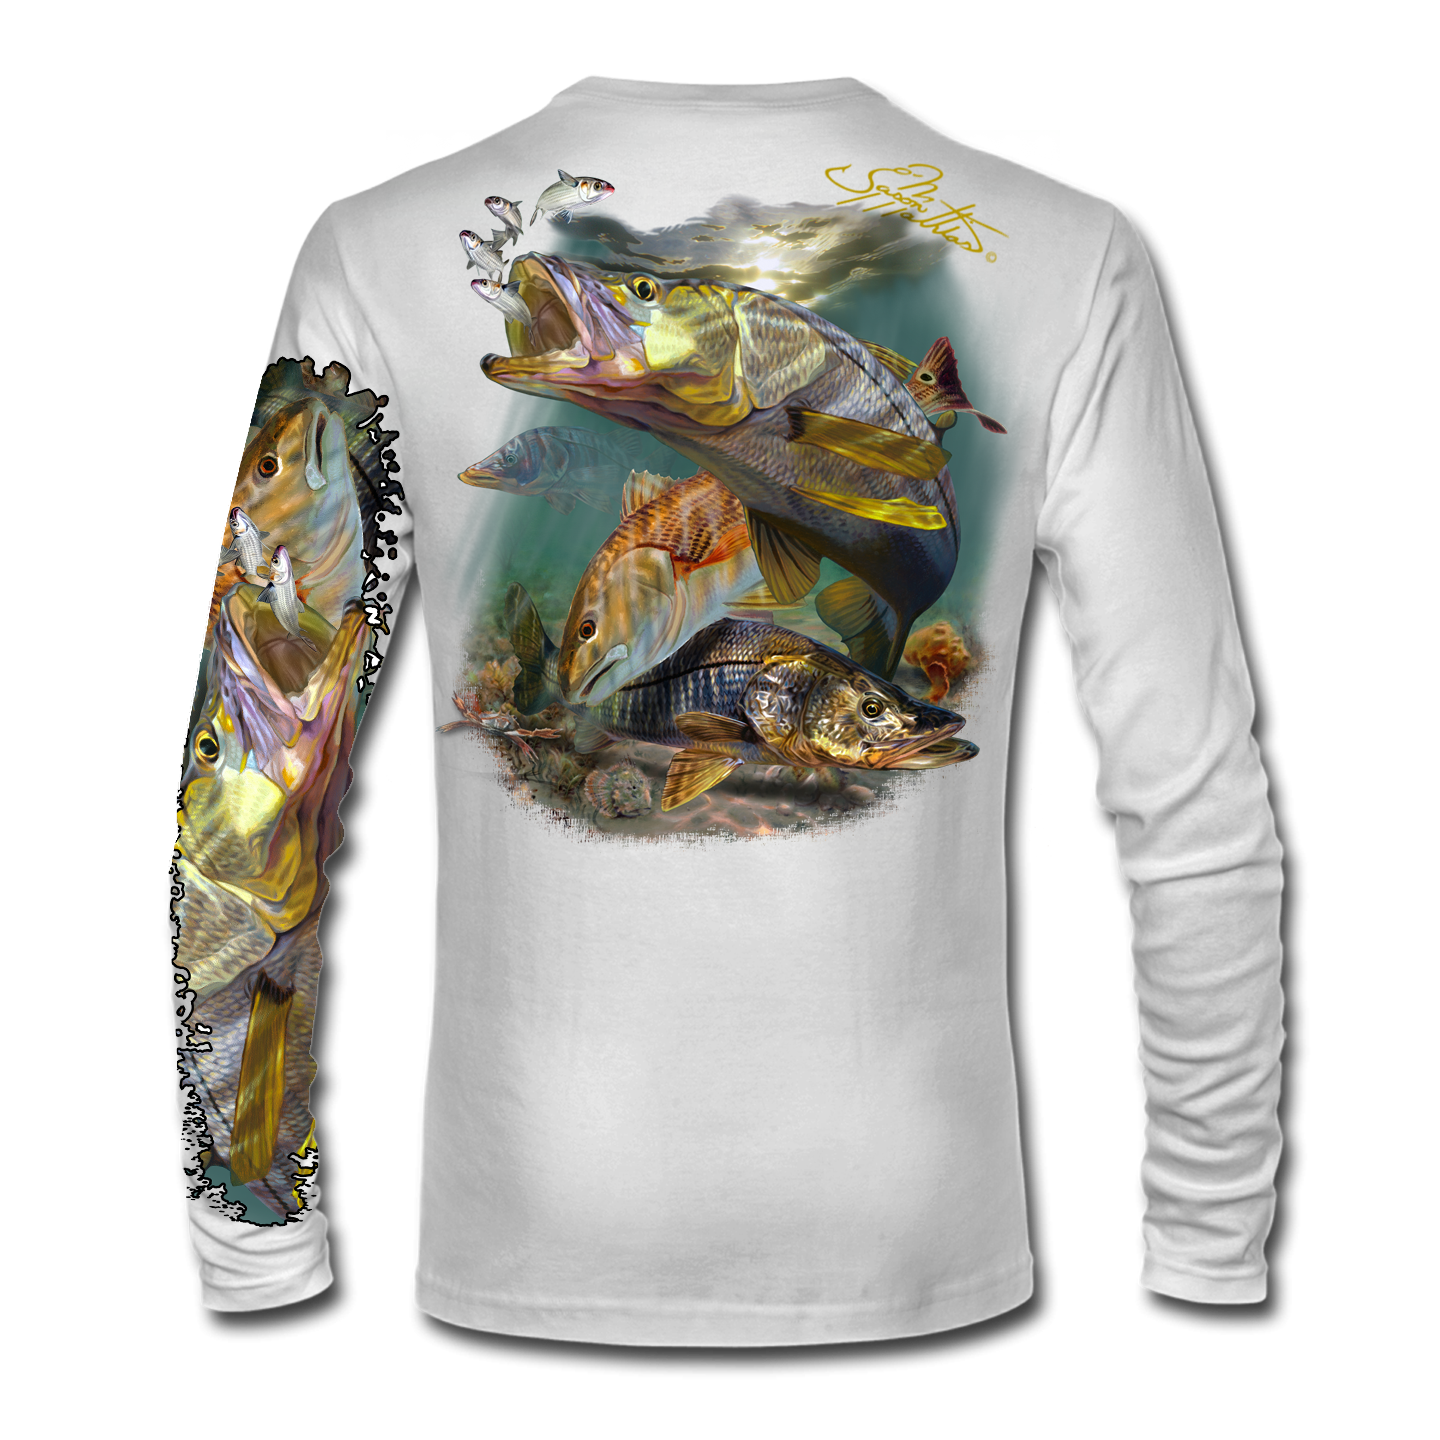 inshore-redfish-snook-back-white-jason-mathias-shirt.png